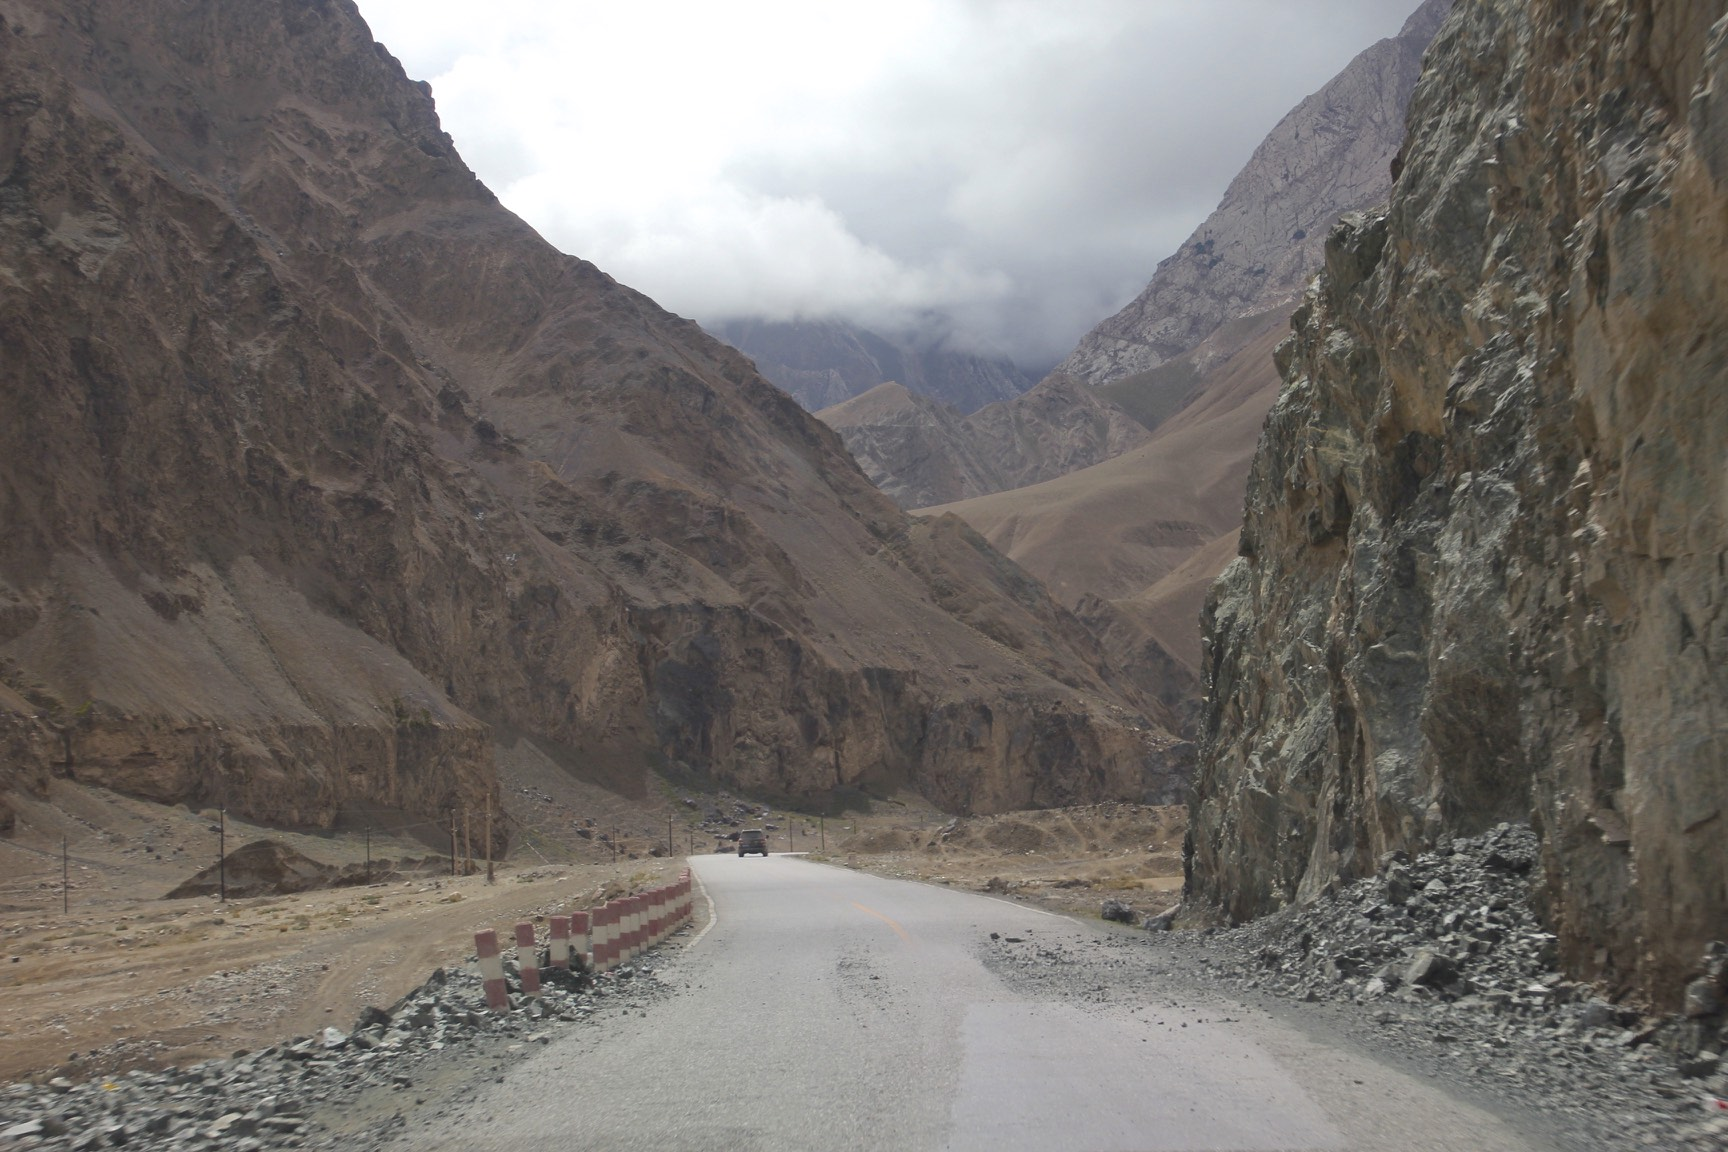 The road from Mazar to Ilik though north Karakoram Mountains